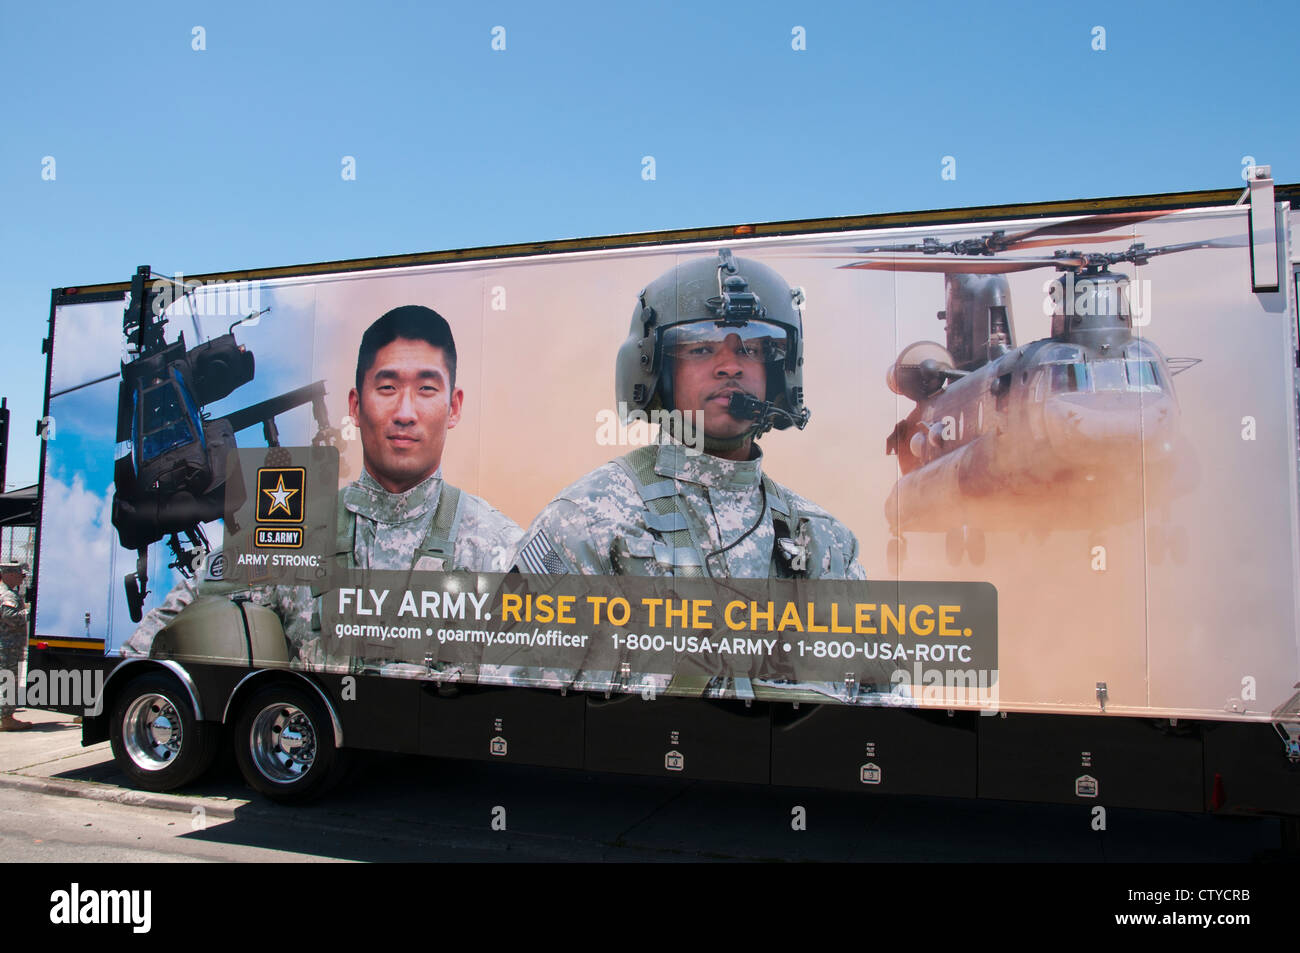 Fly Army helicopter Air force United States of America American USA Billboard Advertising  Nay - Stock Image